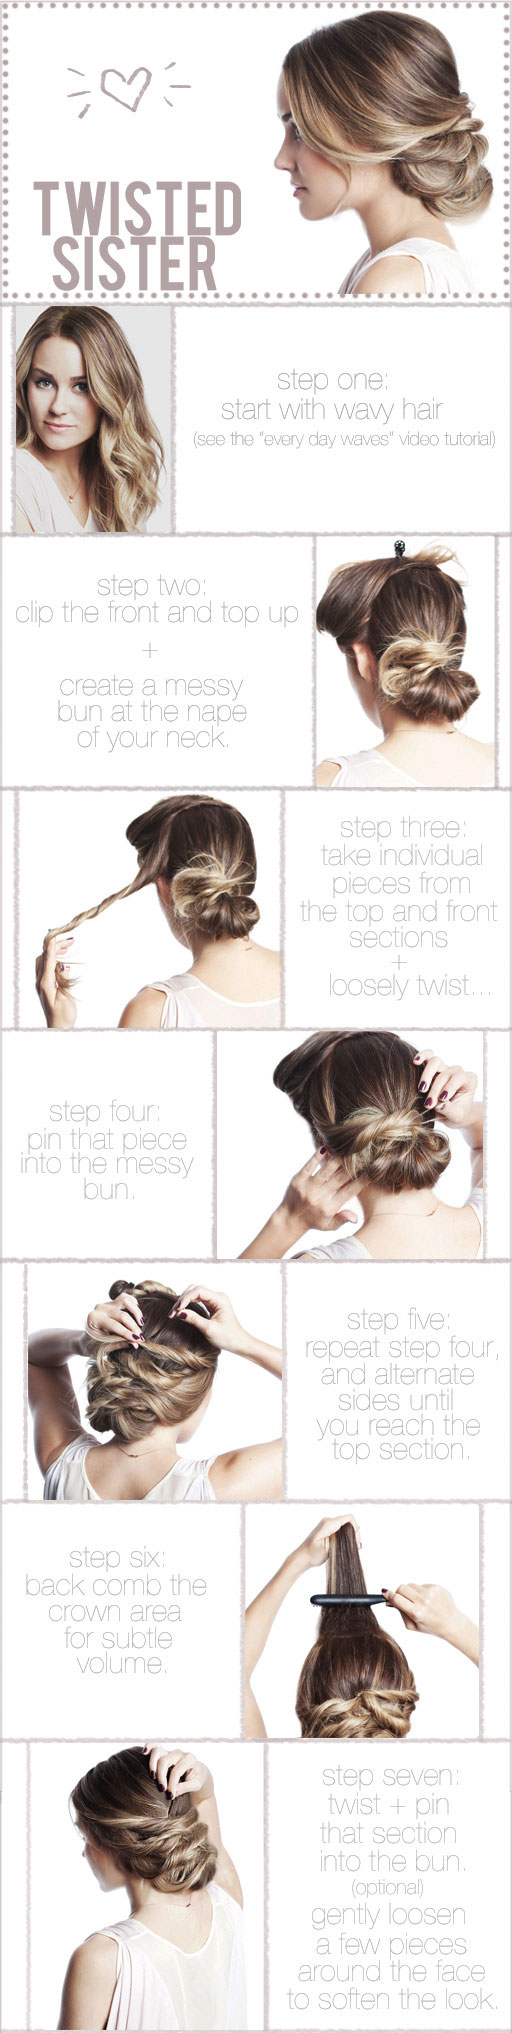 12 DIY Braid Tutorials (Great for Brides!)